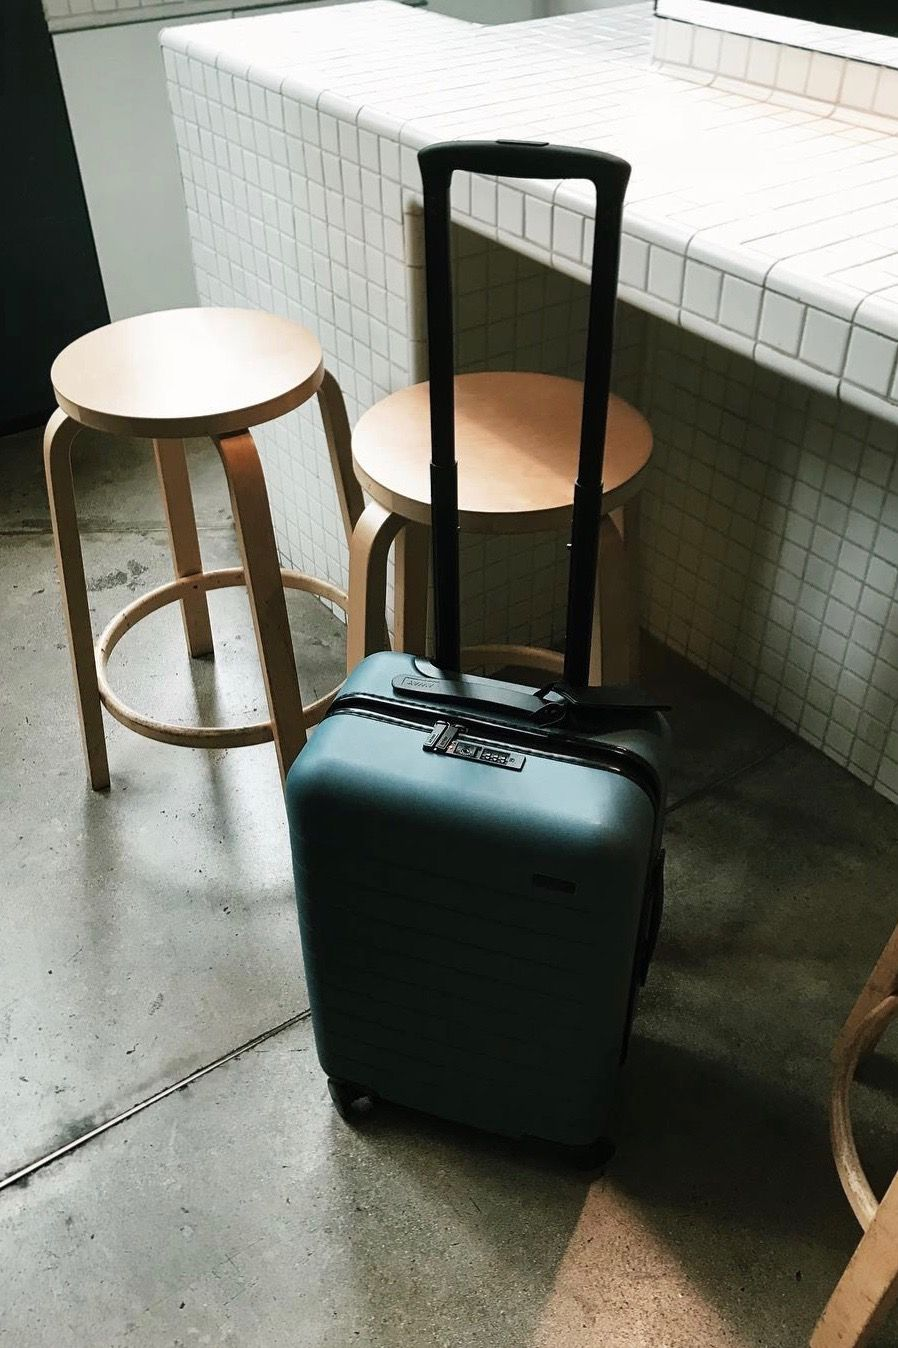 ee810acda79e A suitcase guaranteed to make holiday travel a breeze. Shop The Carry-On in  Green. 📷   nataliaswarz